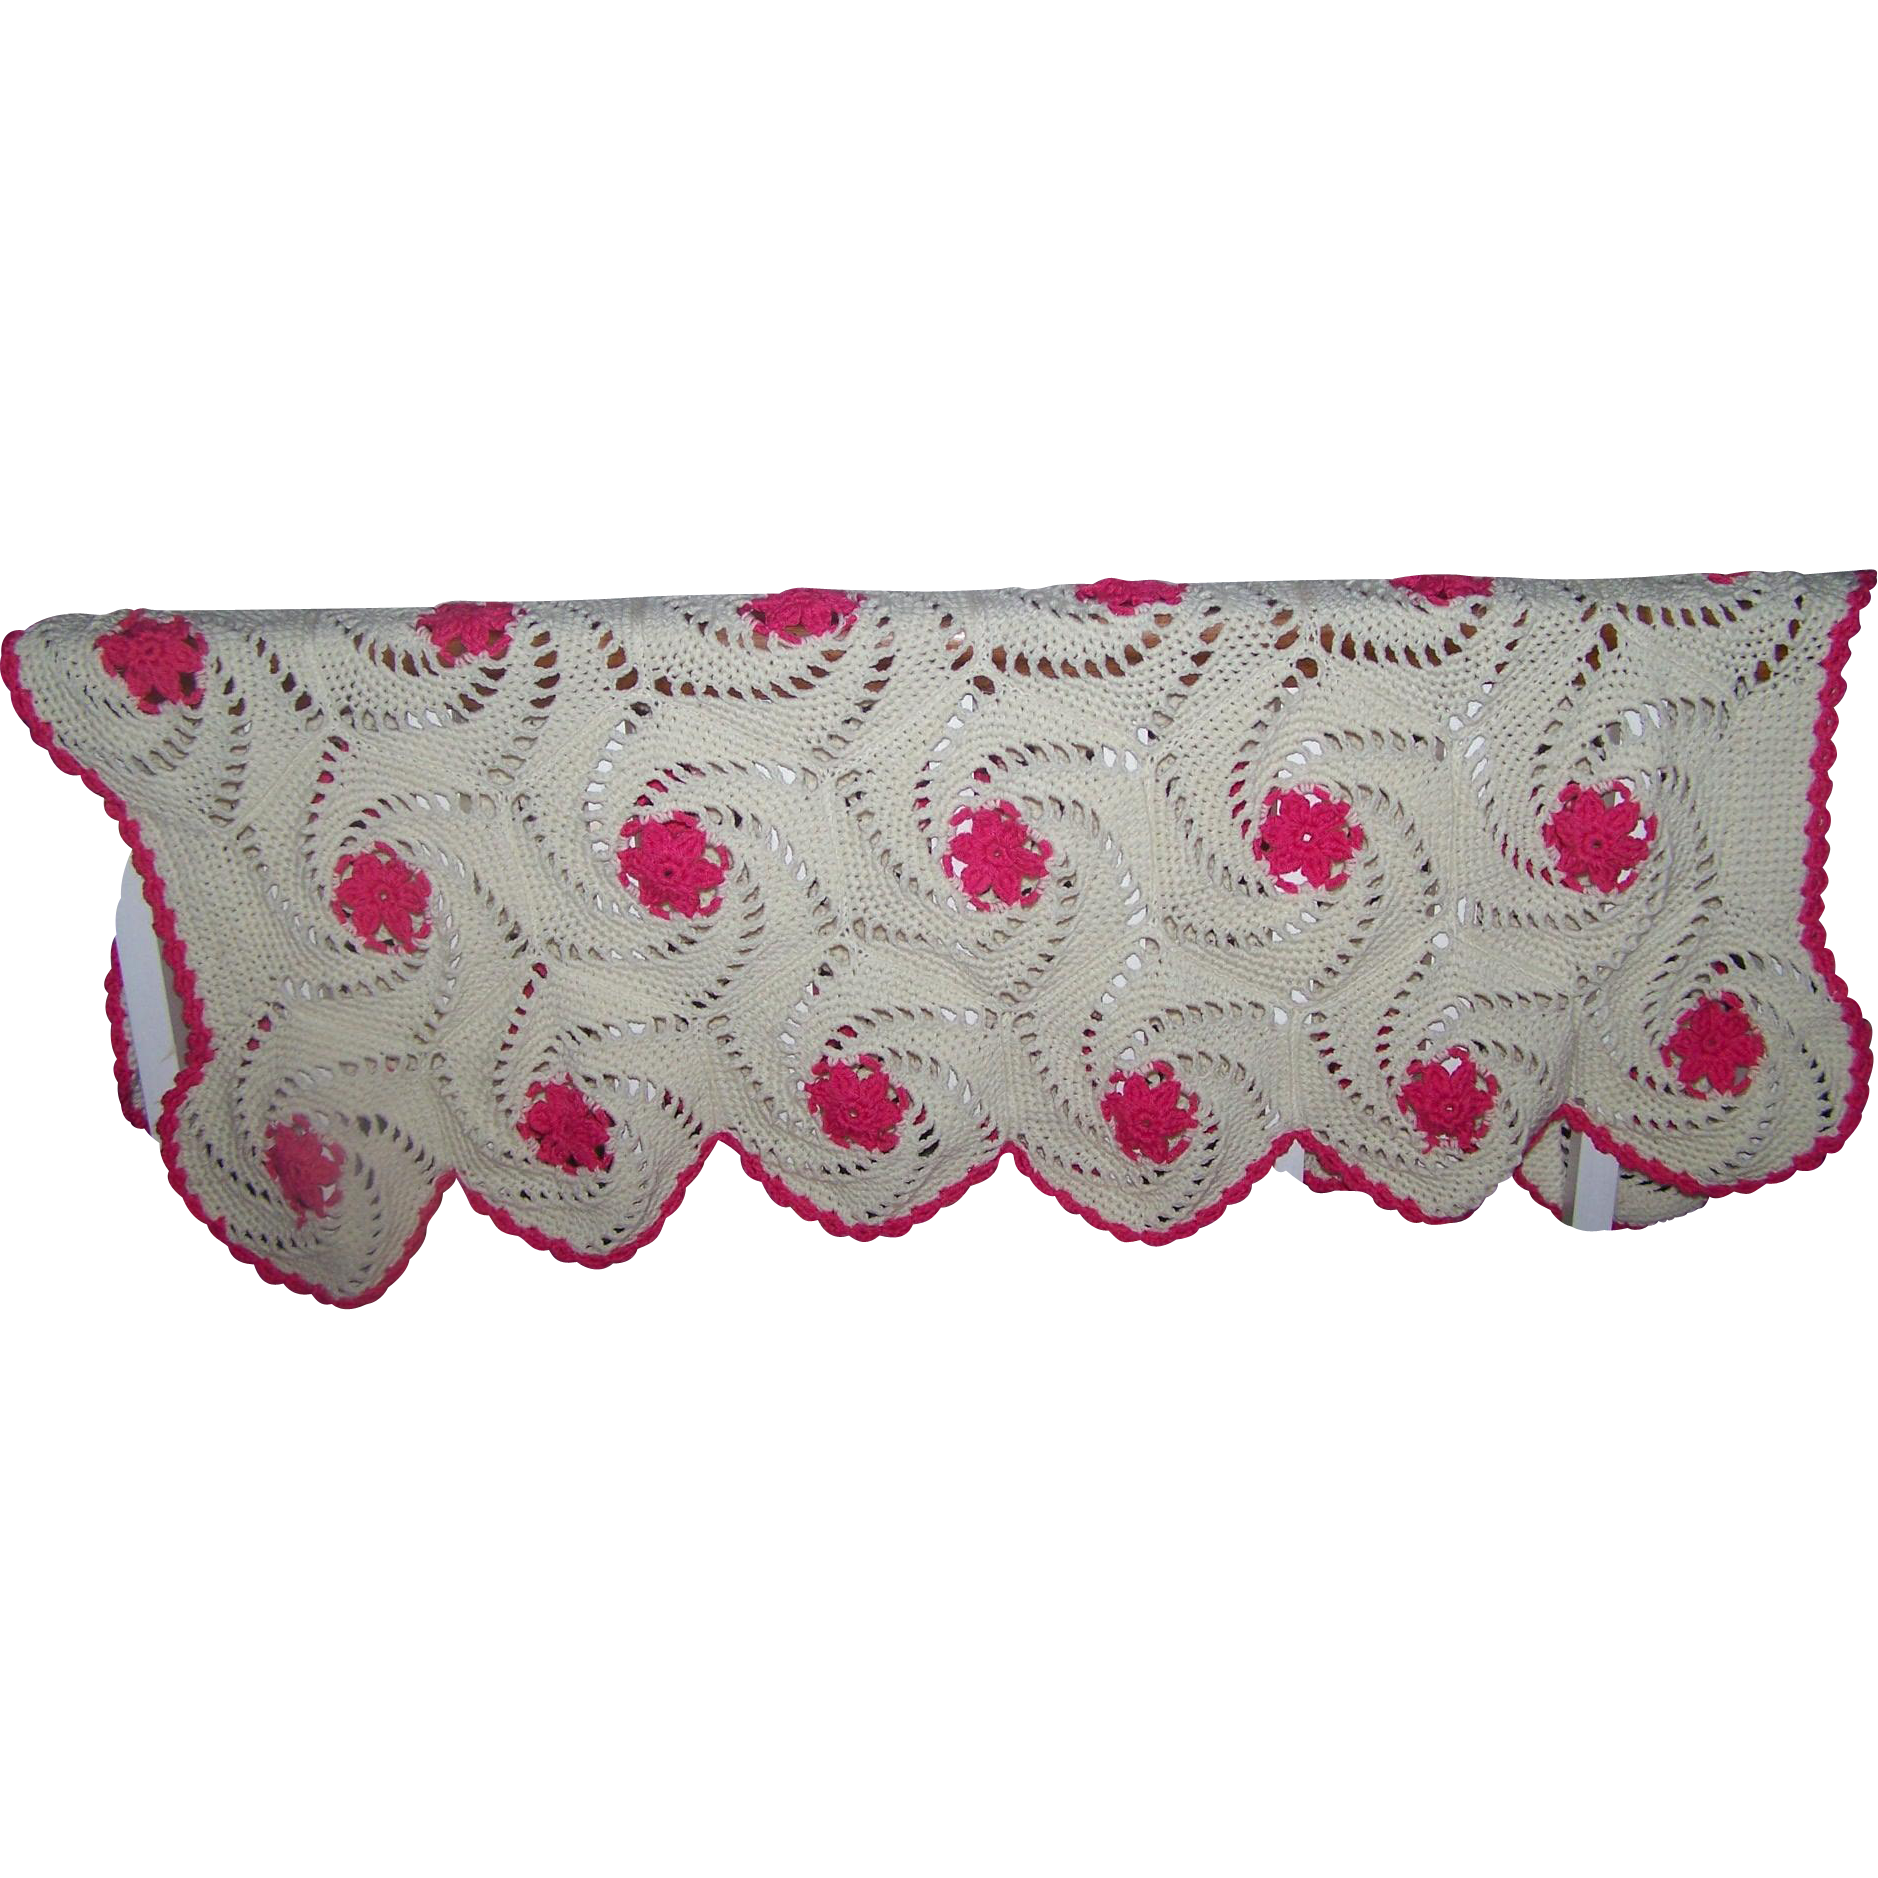 Oh So Pretty Hand Made Crochet Off White With Pink Floral Accents Blanket Home Decor Accent